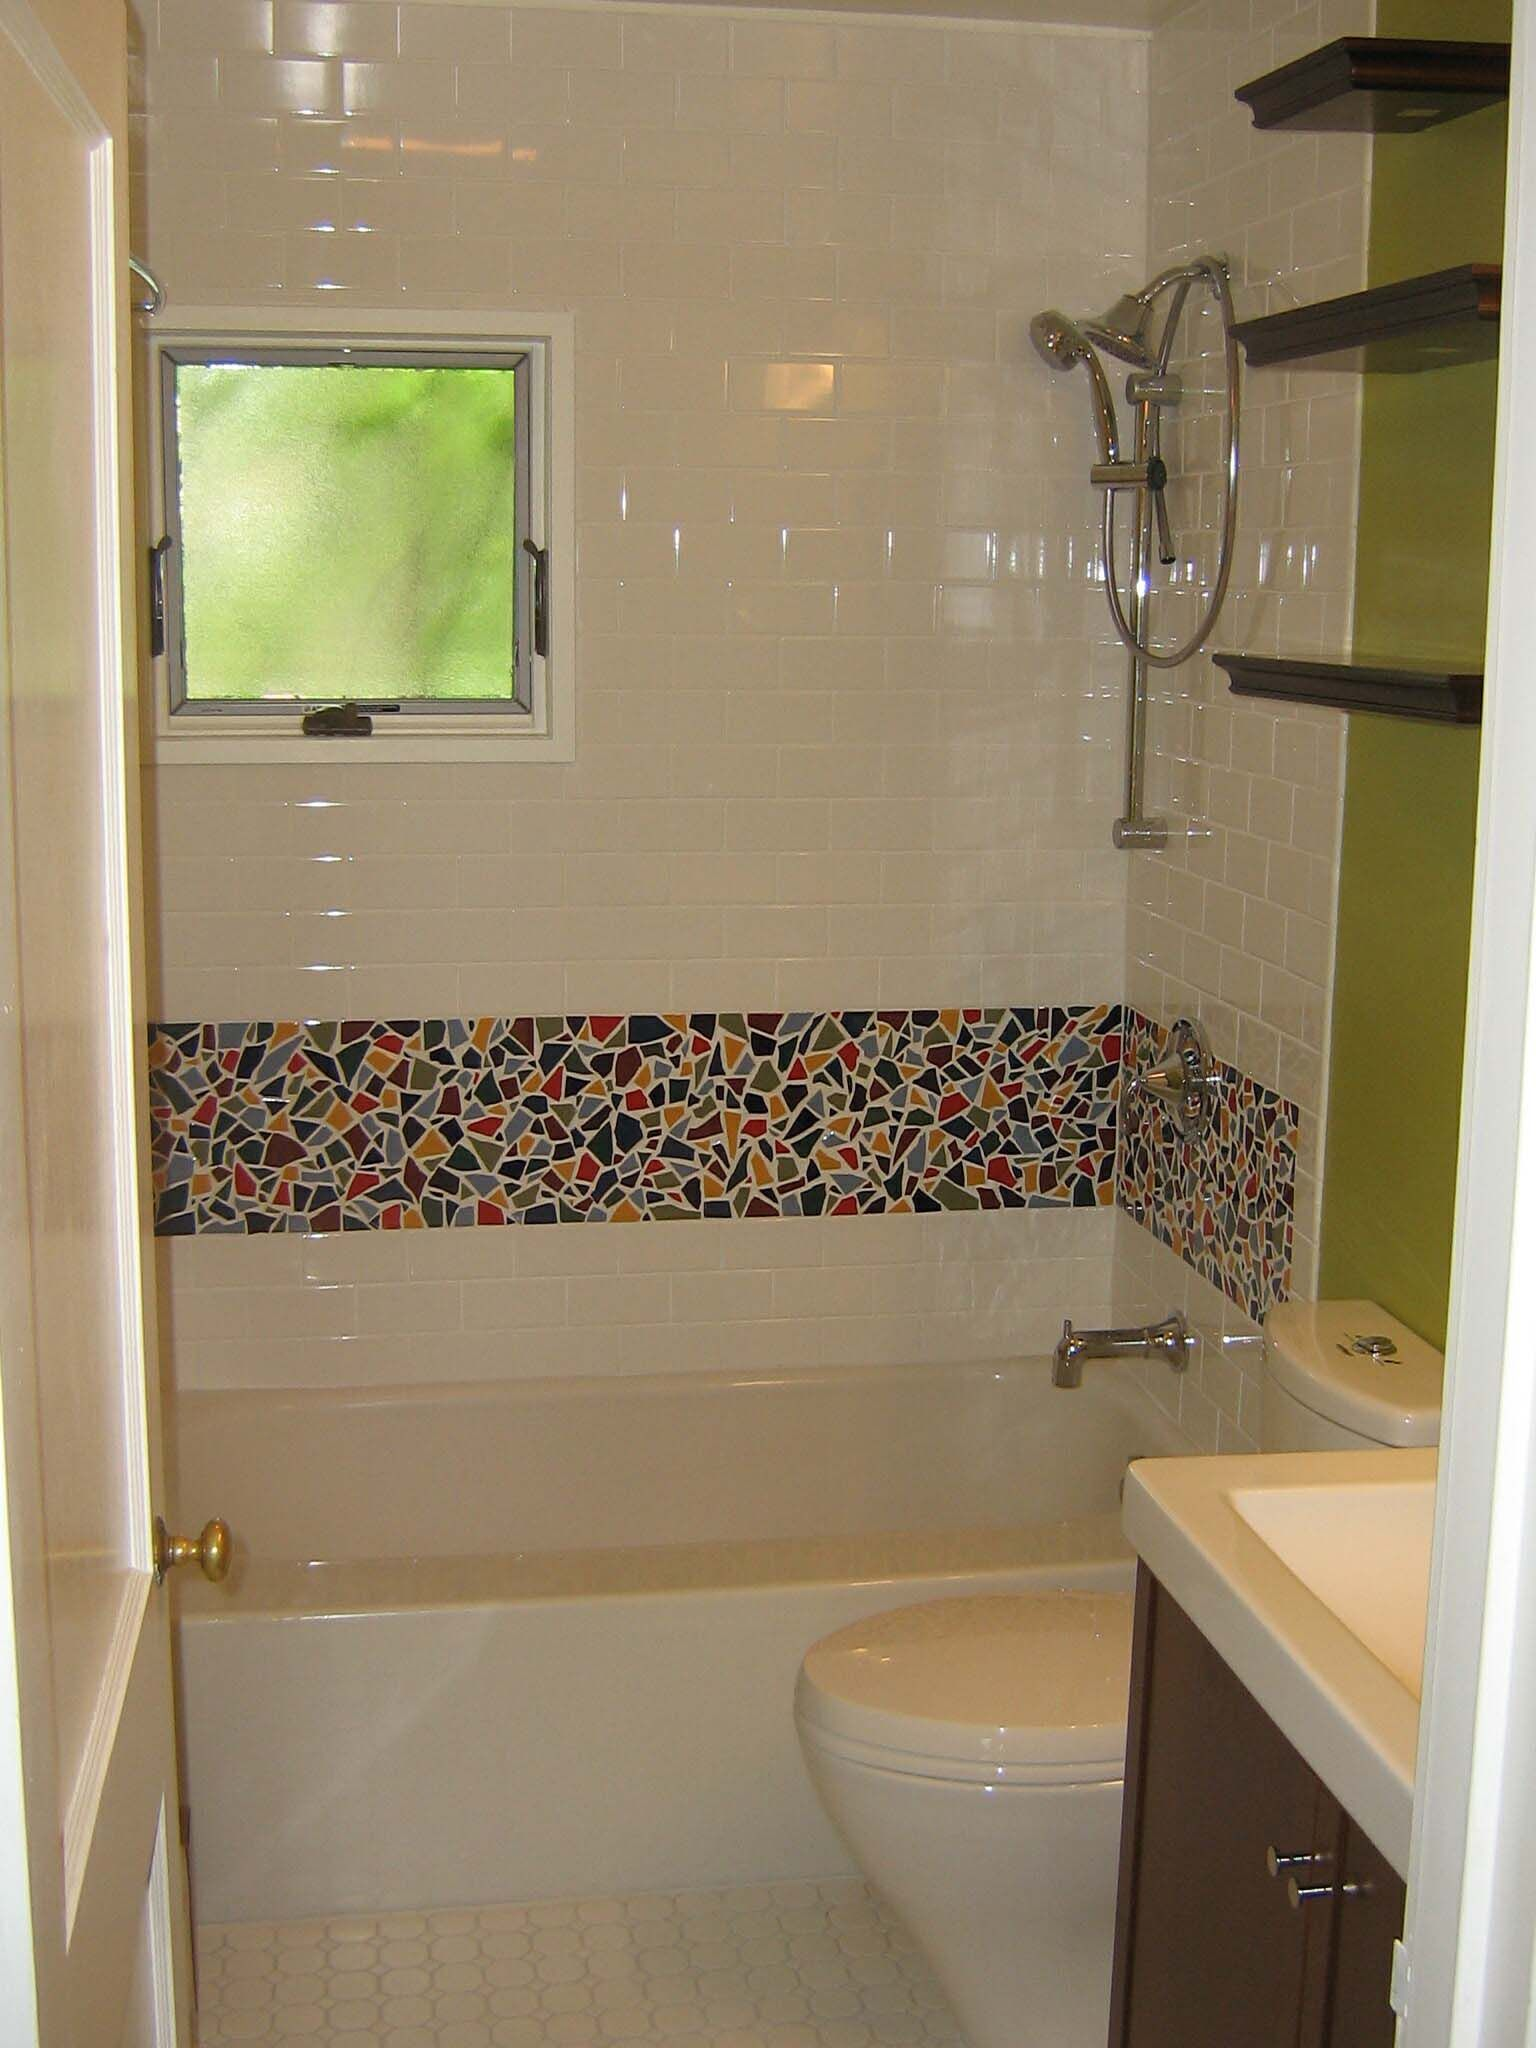 Bathroom With Mosaic Tiles On Rukle Modern Bathroom Mosaic Designs, Gallery  Bathroom With Mosaic Tiles